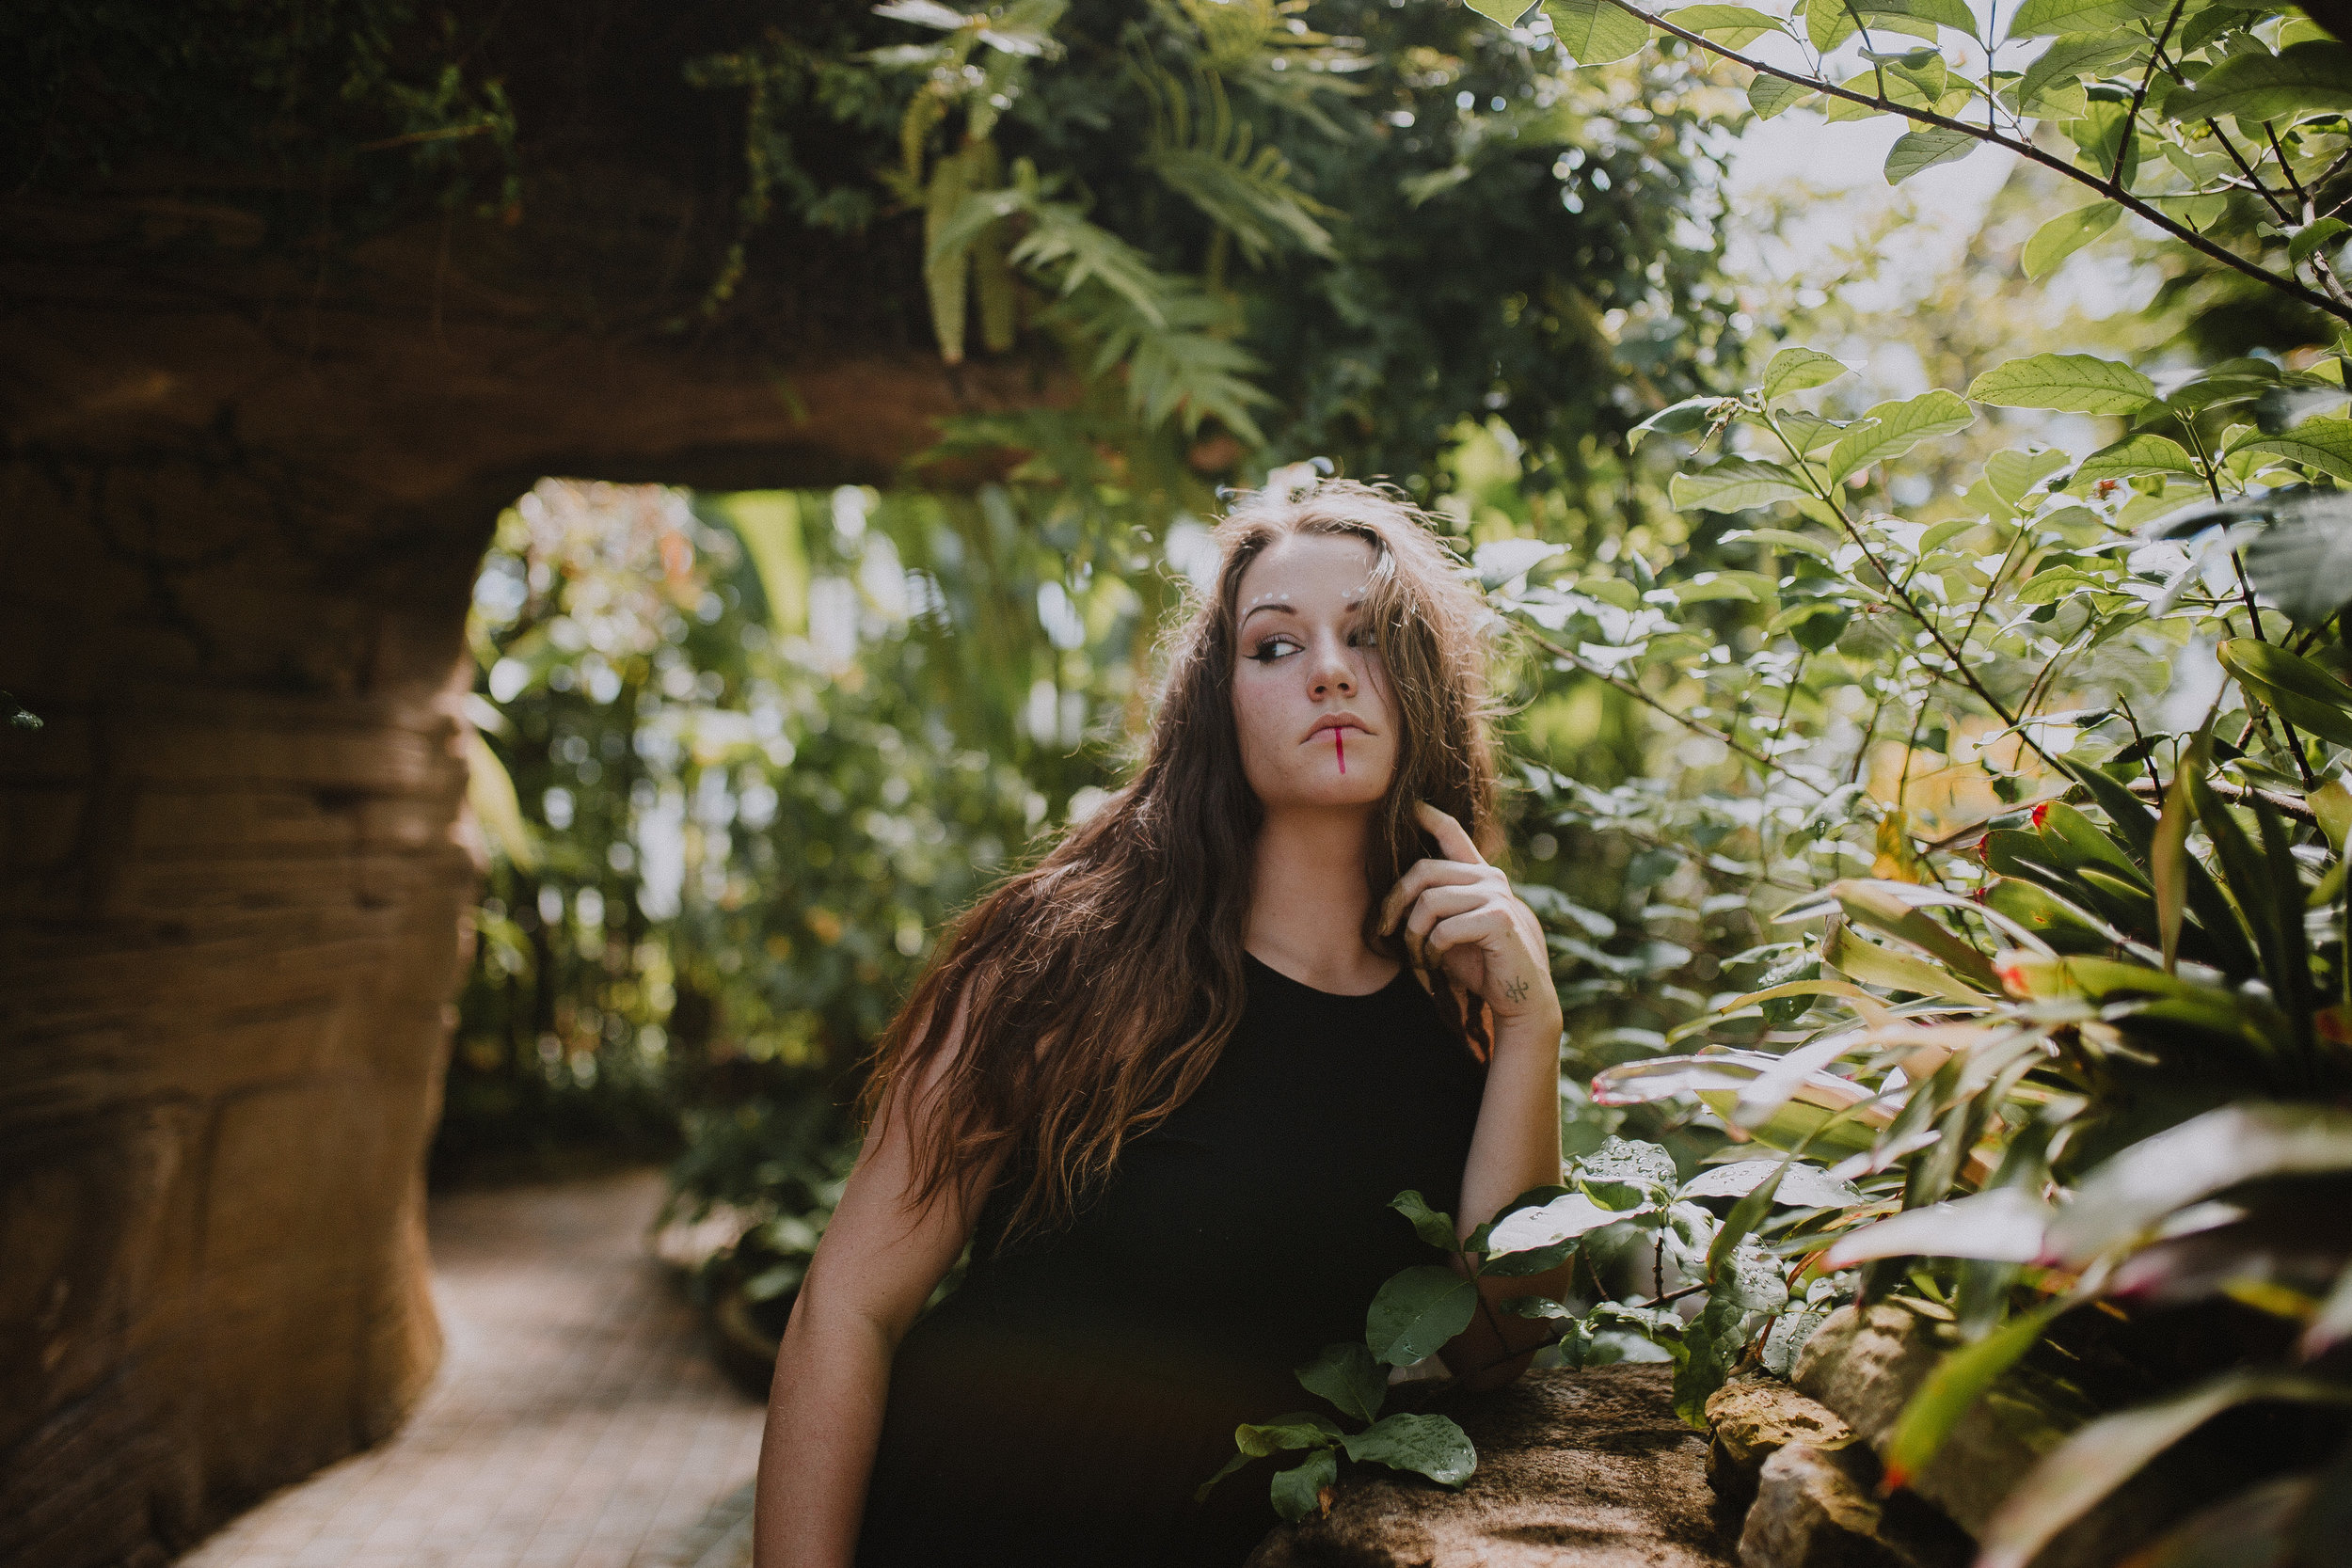 KAITLIN-GREENHOUSE-REAGANLYNNPHOTOGRAPHY-INDIANAPOLIS-INDIANA-6.jpg